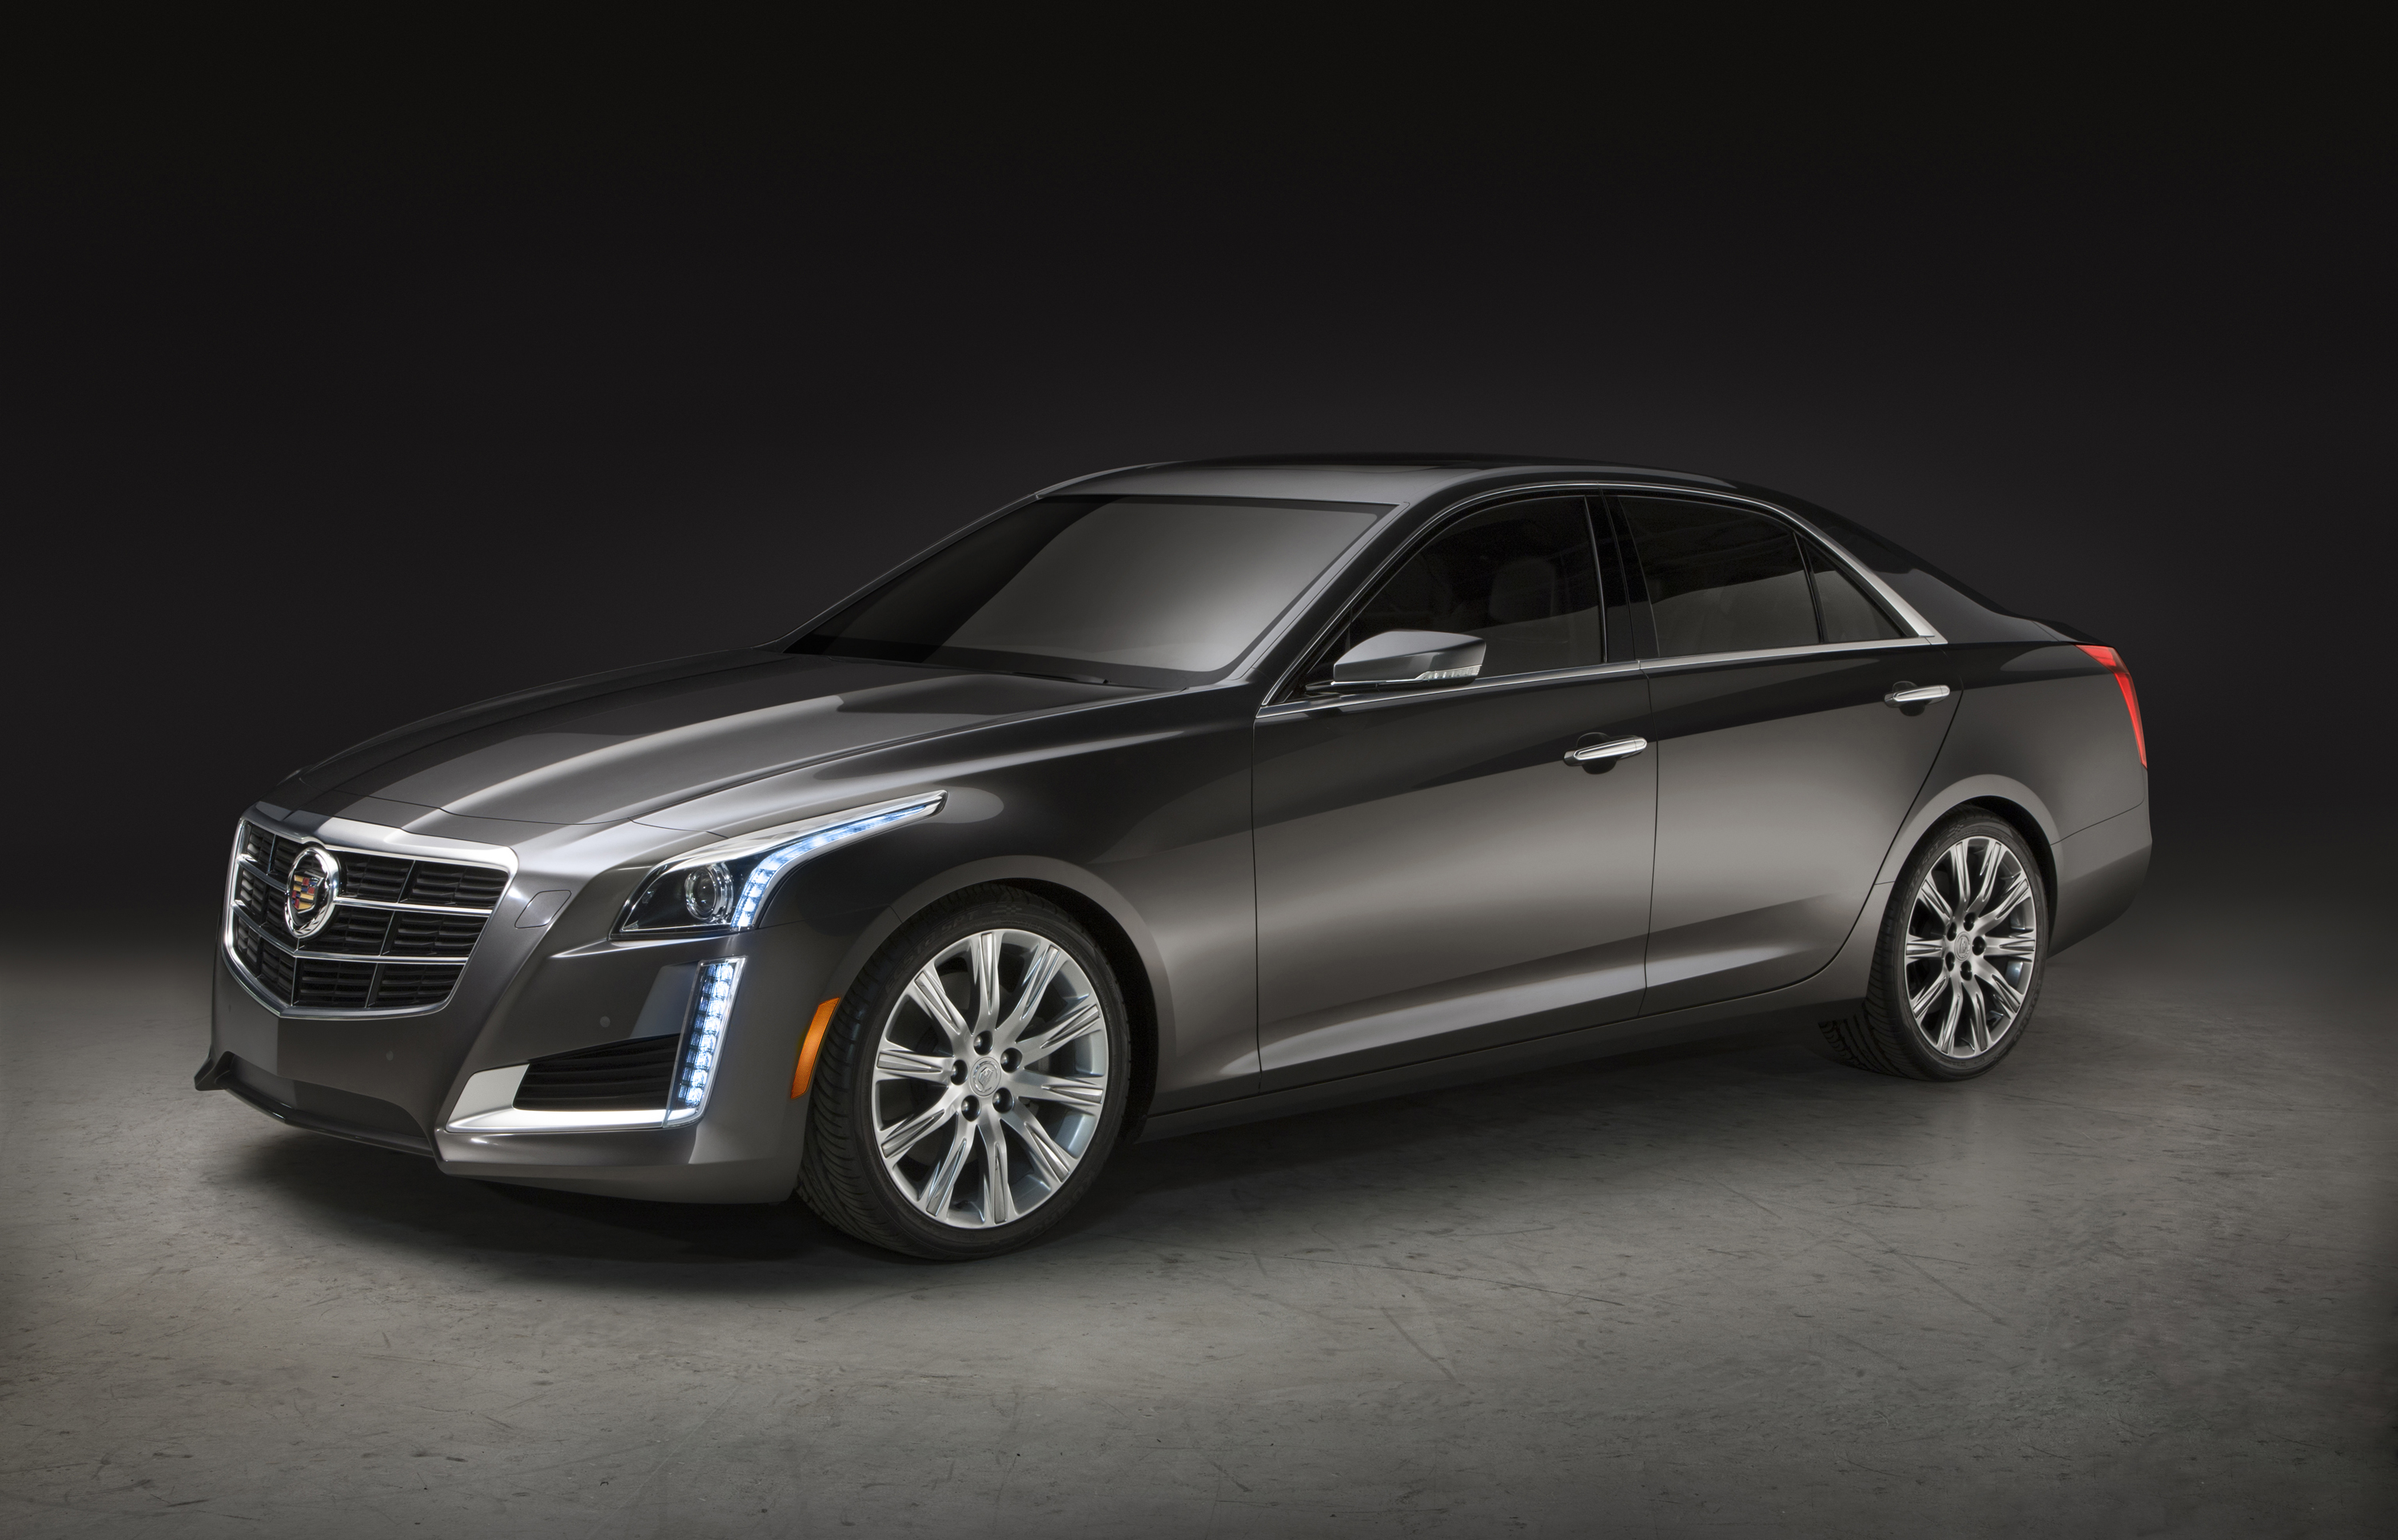 2014 cadillac cts preliminary specifications 2014 cadillac cts preliminary